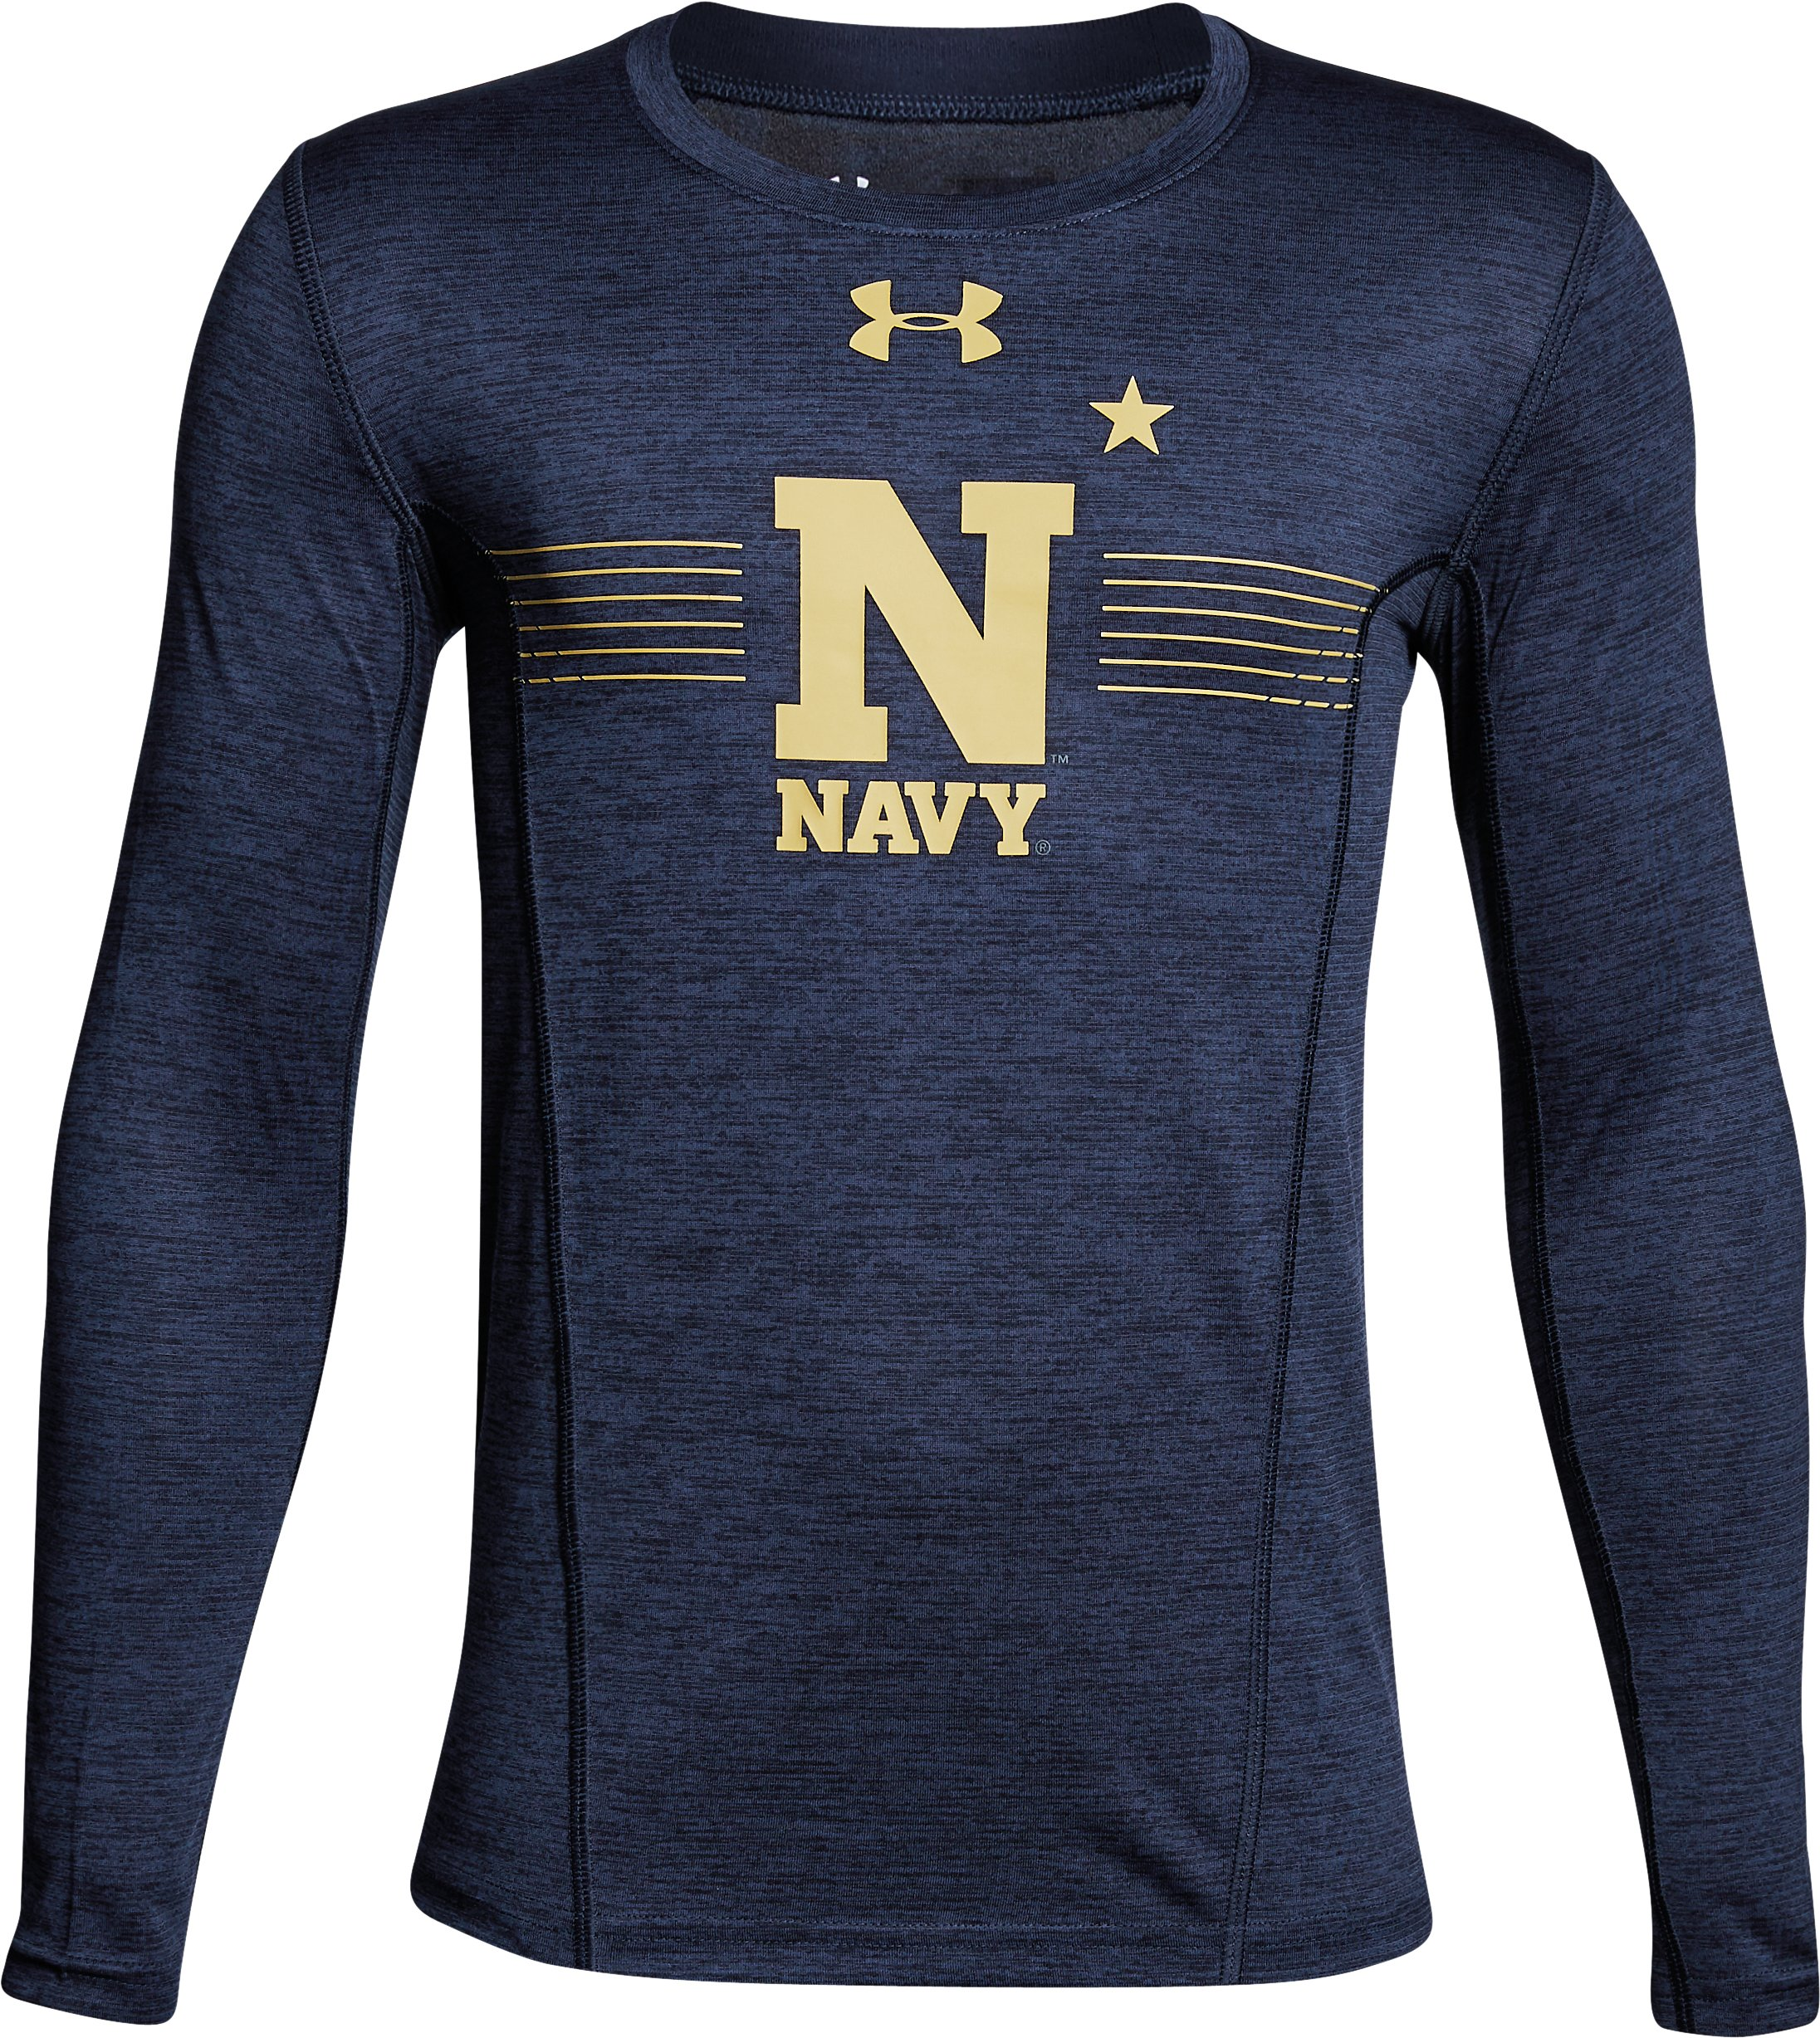 Boys' Naval Academy Long Sleeve Training T-Shirt, Midnight Navy, undefined